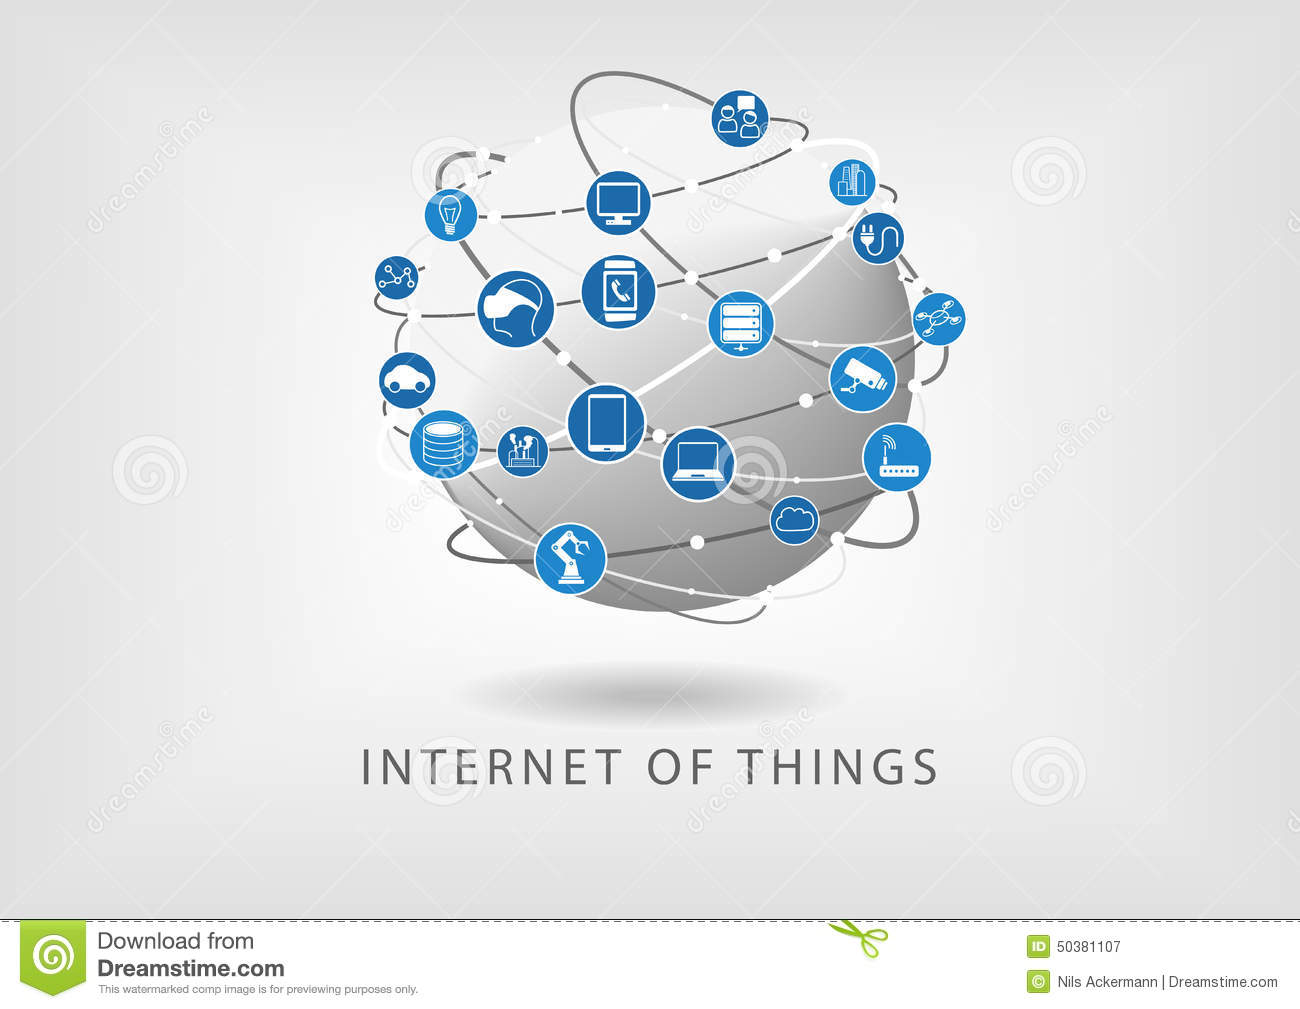 Internet Of Things Clipart.